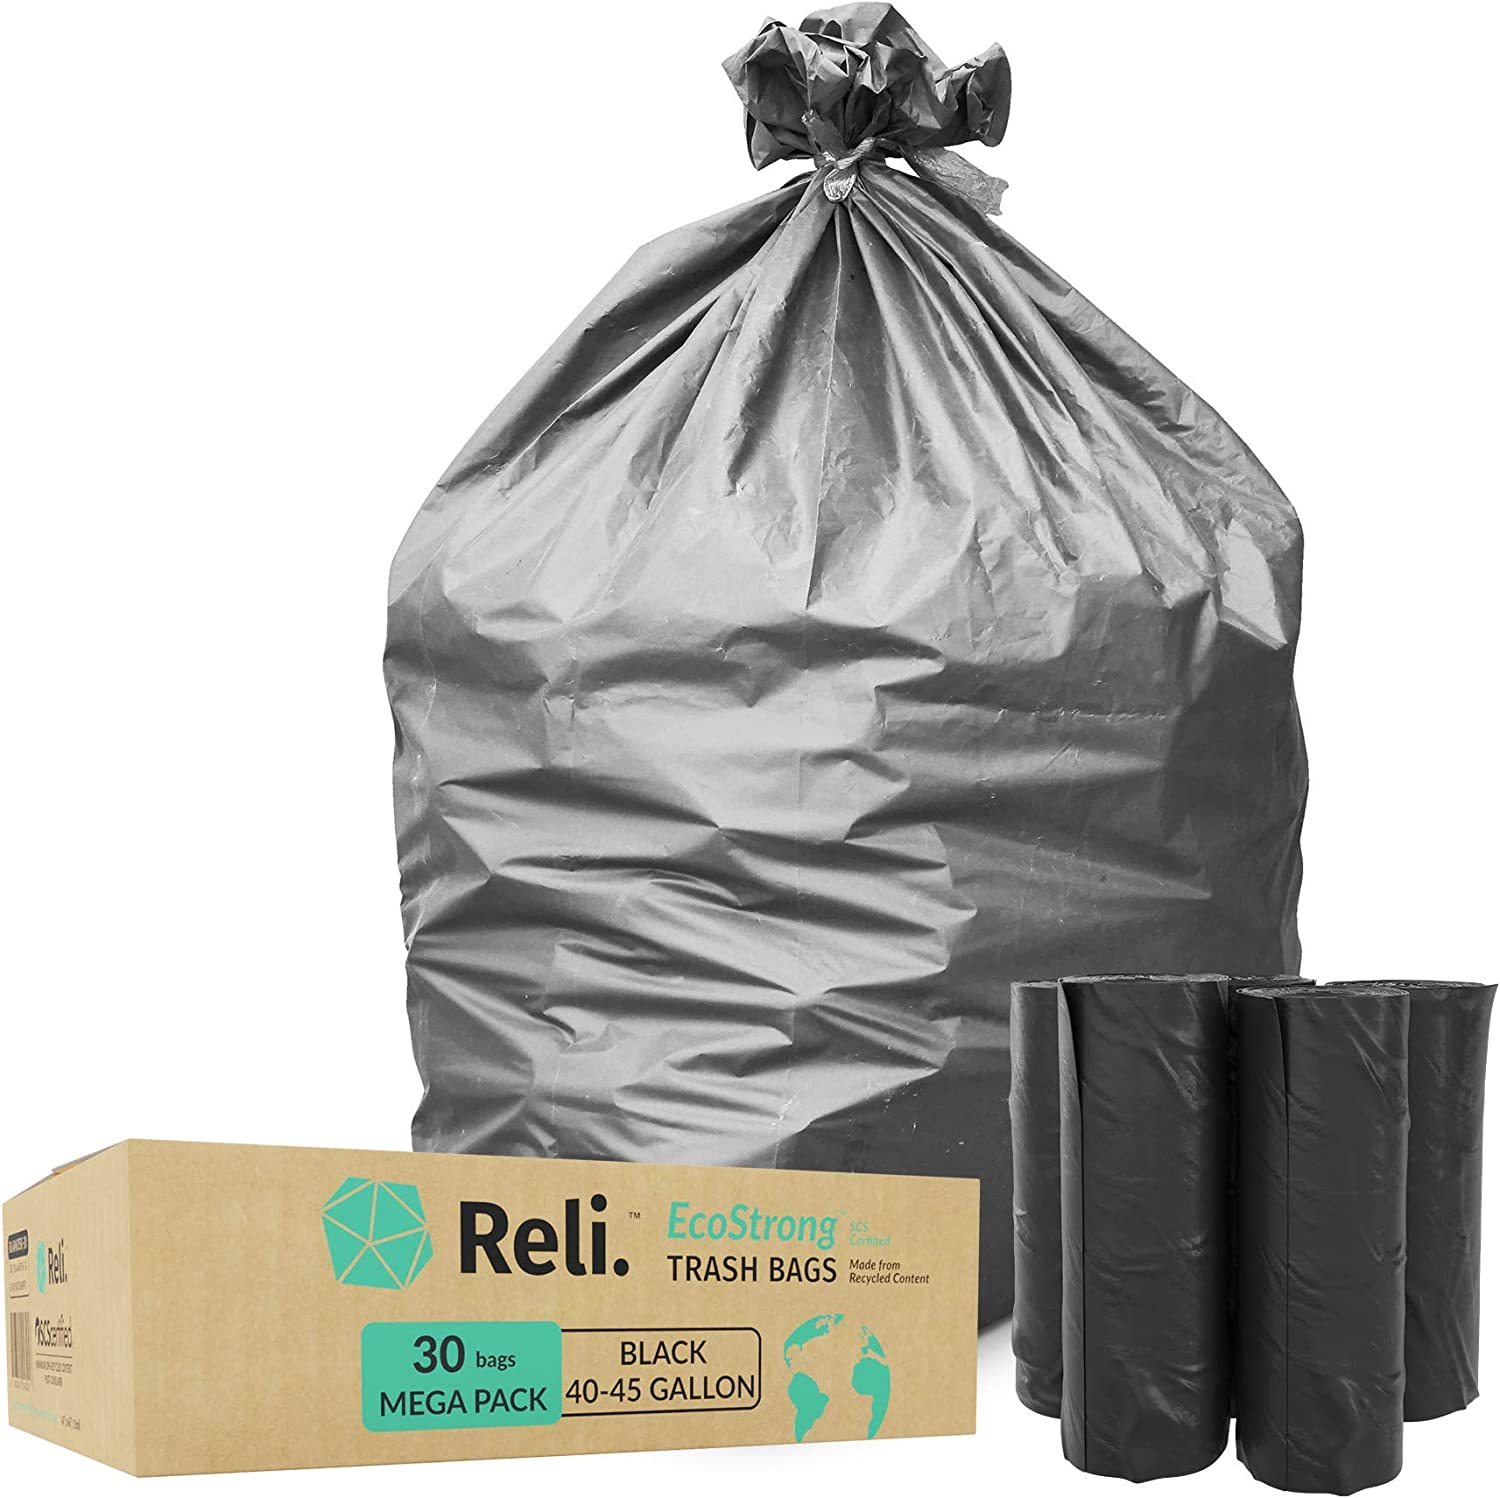 Reli. EcoStrong 40-45 Gallon Trash Bags (30 Count) Eco-Friendly Recyclable - 40 Gallon - 44 Gallon - 45 Gallon Black Garbage Bags, Made of Recycled Material, Black Garbage Bags 40-45 Gal Capacity